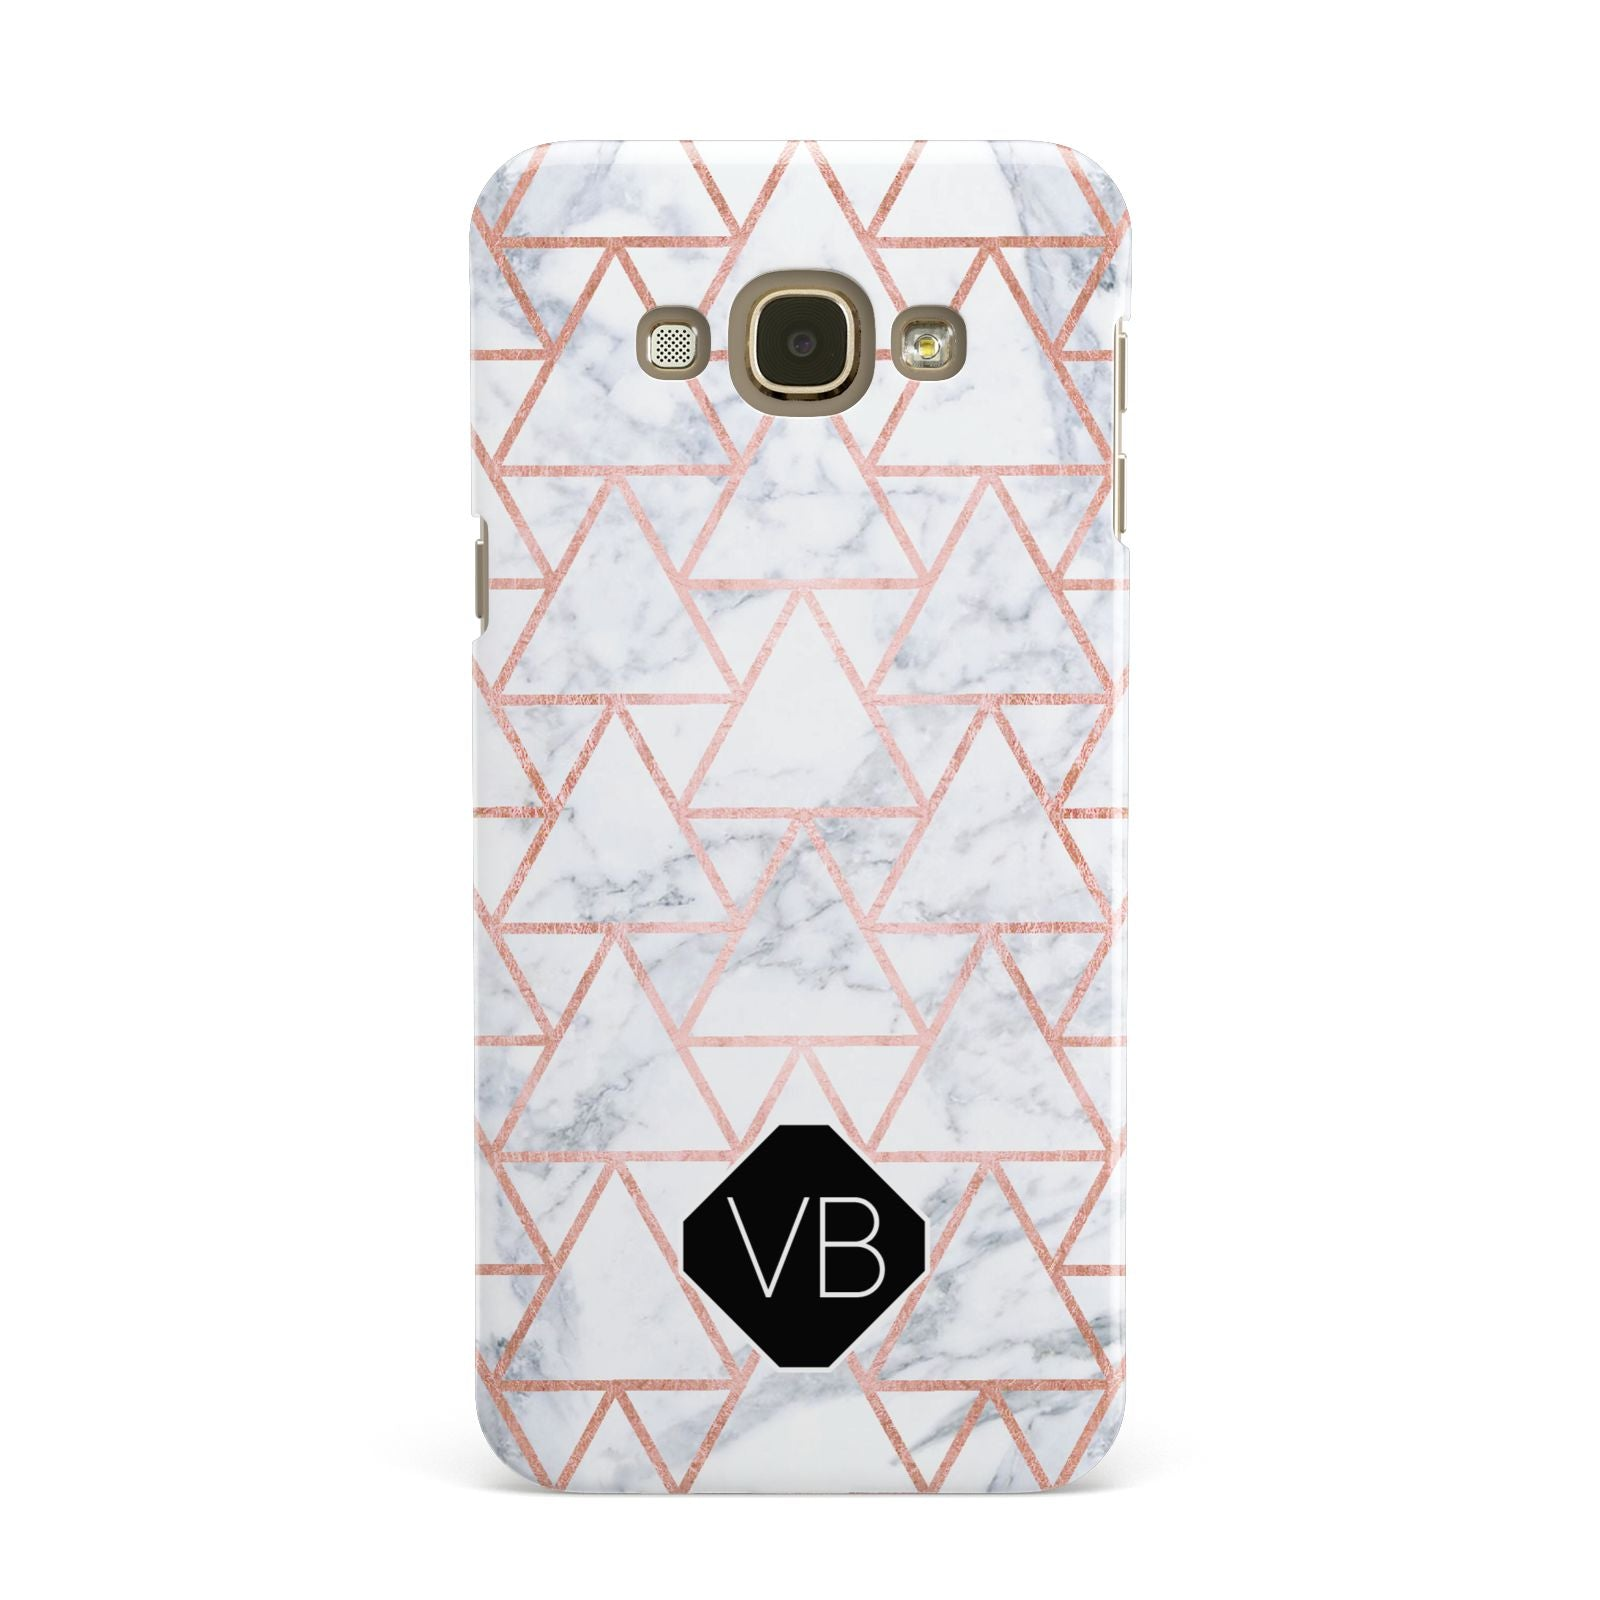 Personalised Rose Gold Grey Marble Hexagon Samsung Galaxy A8 Case